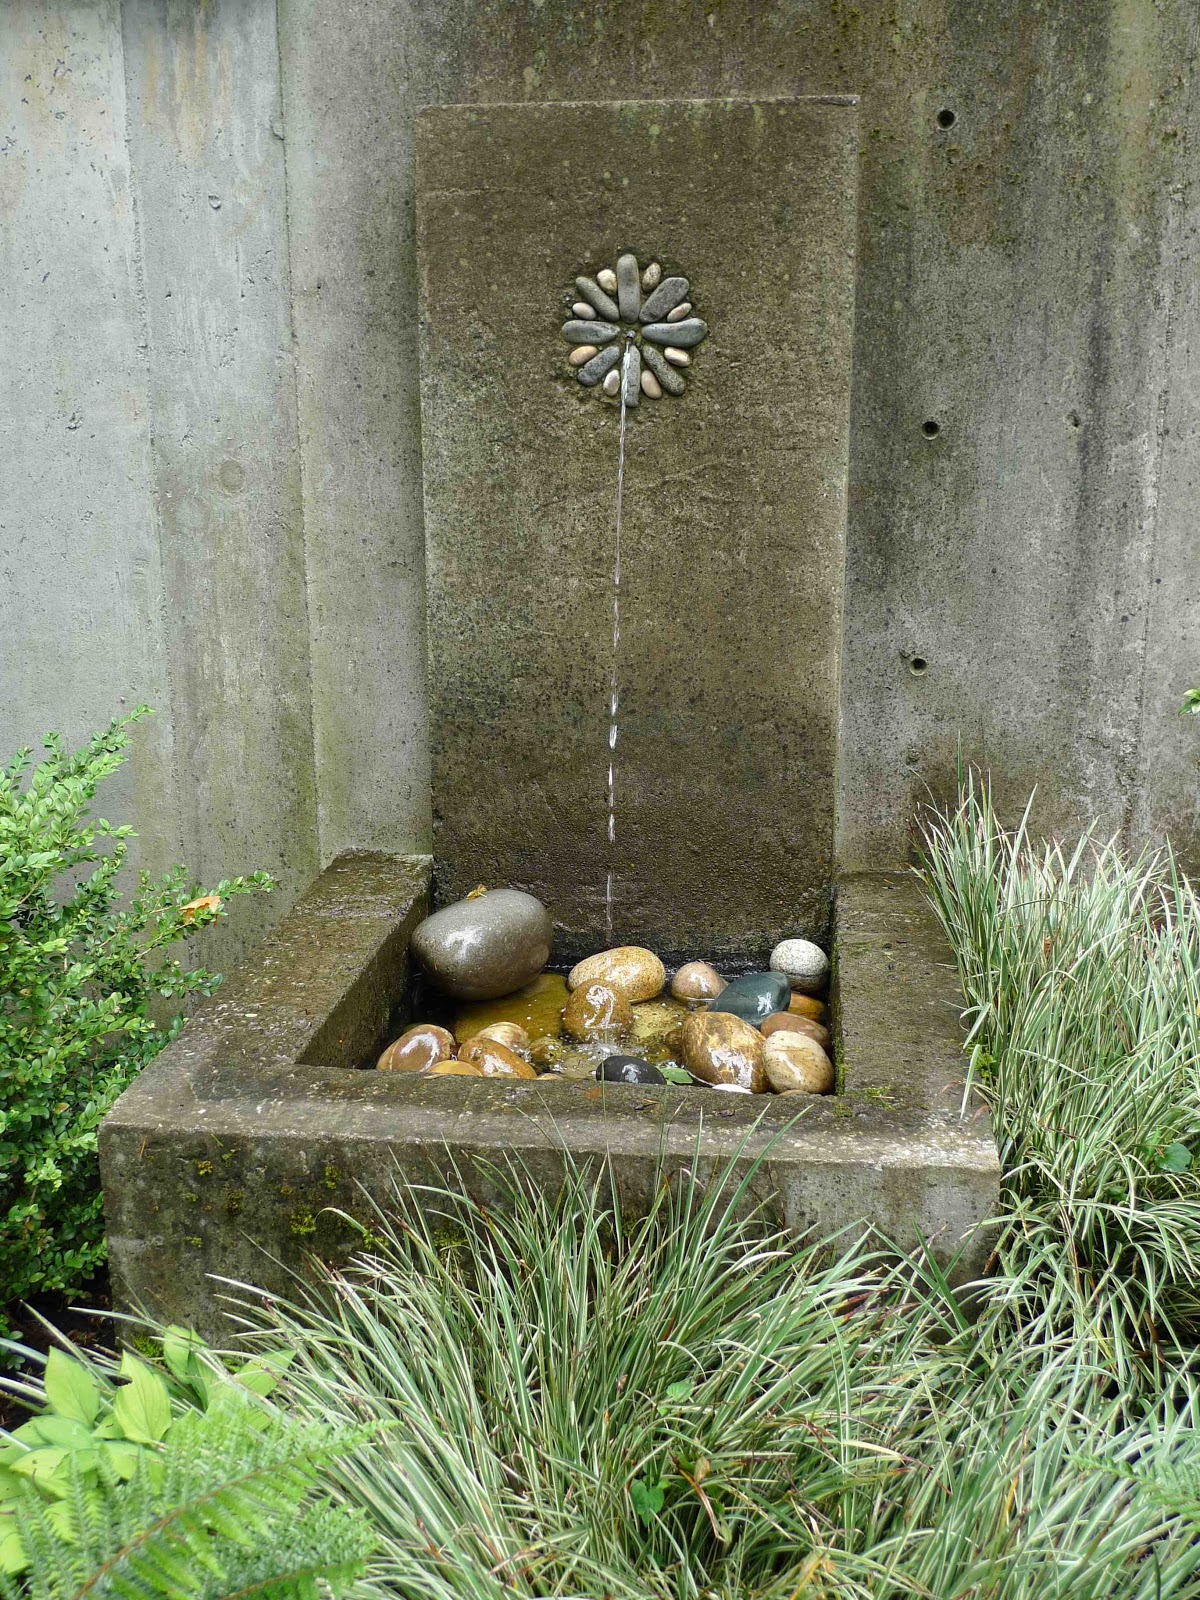 Jeffrey bale 39 s world of gardens the fountain of life for How to make a water wall fountain